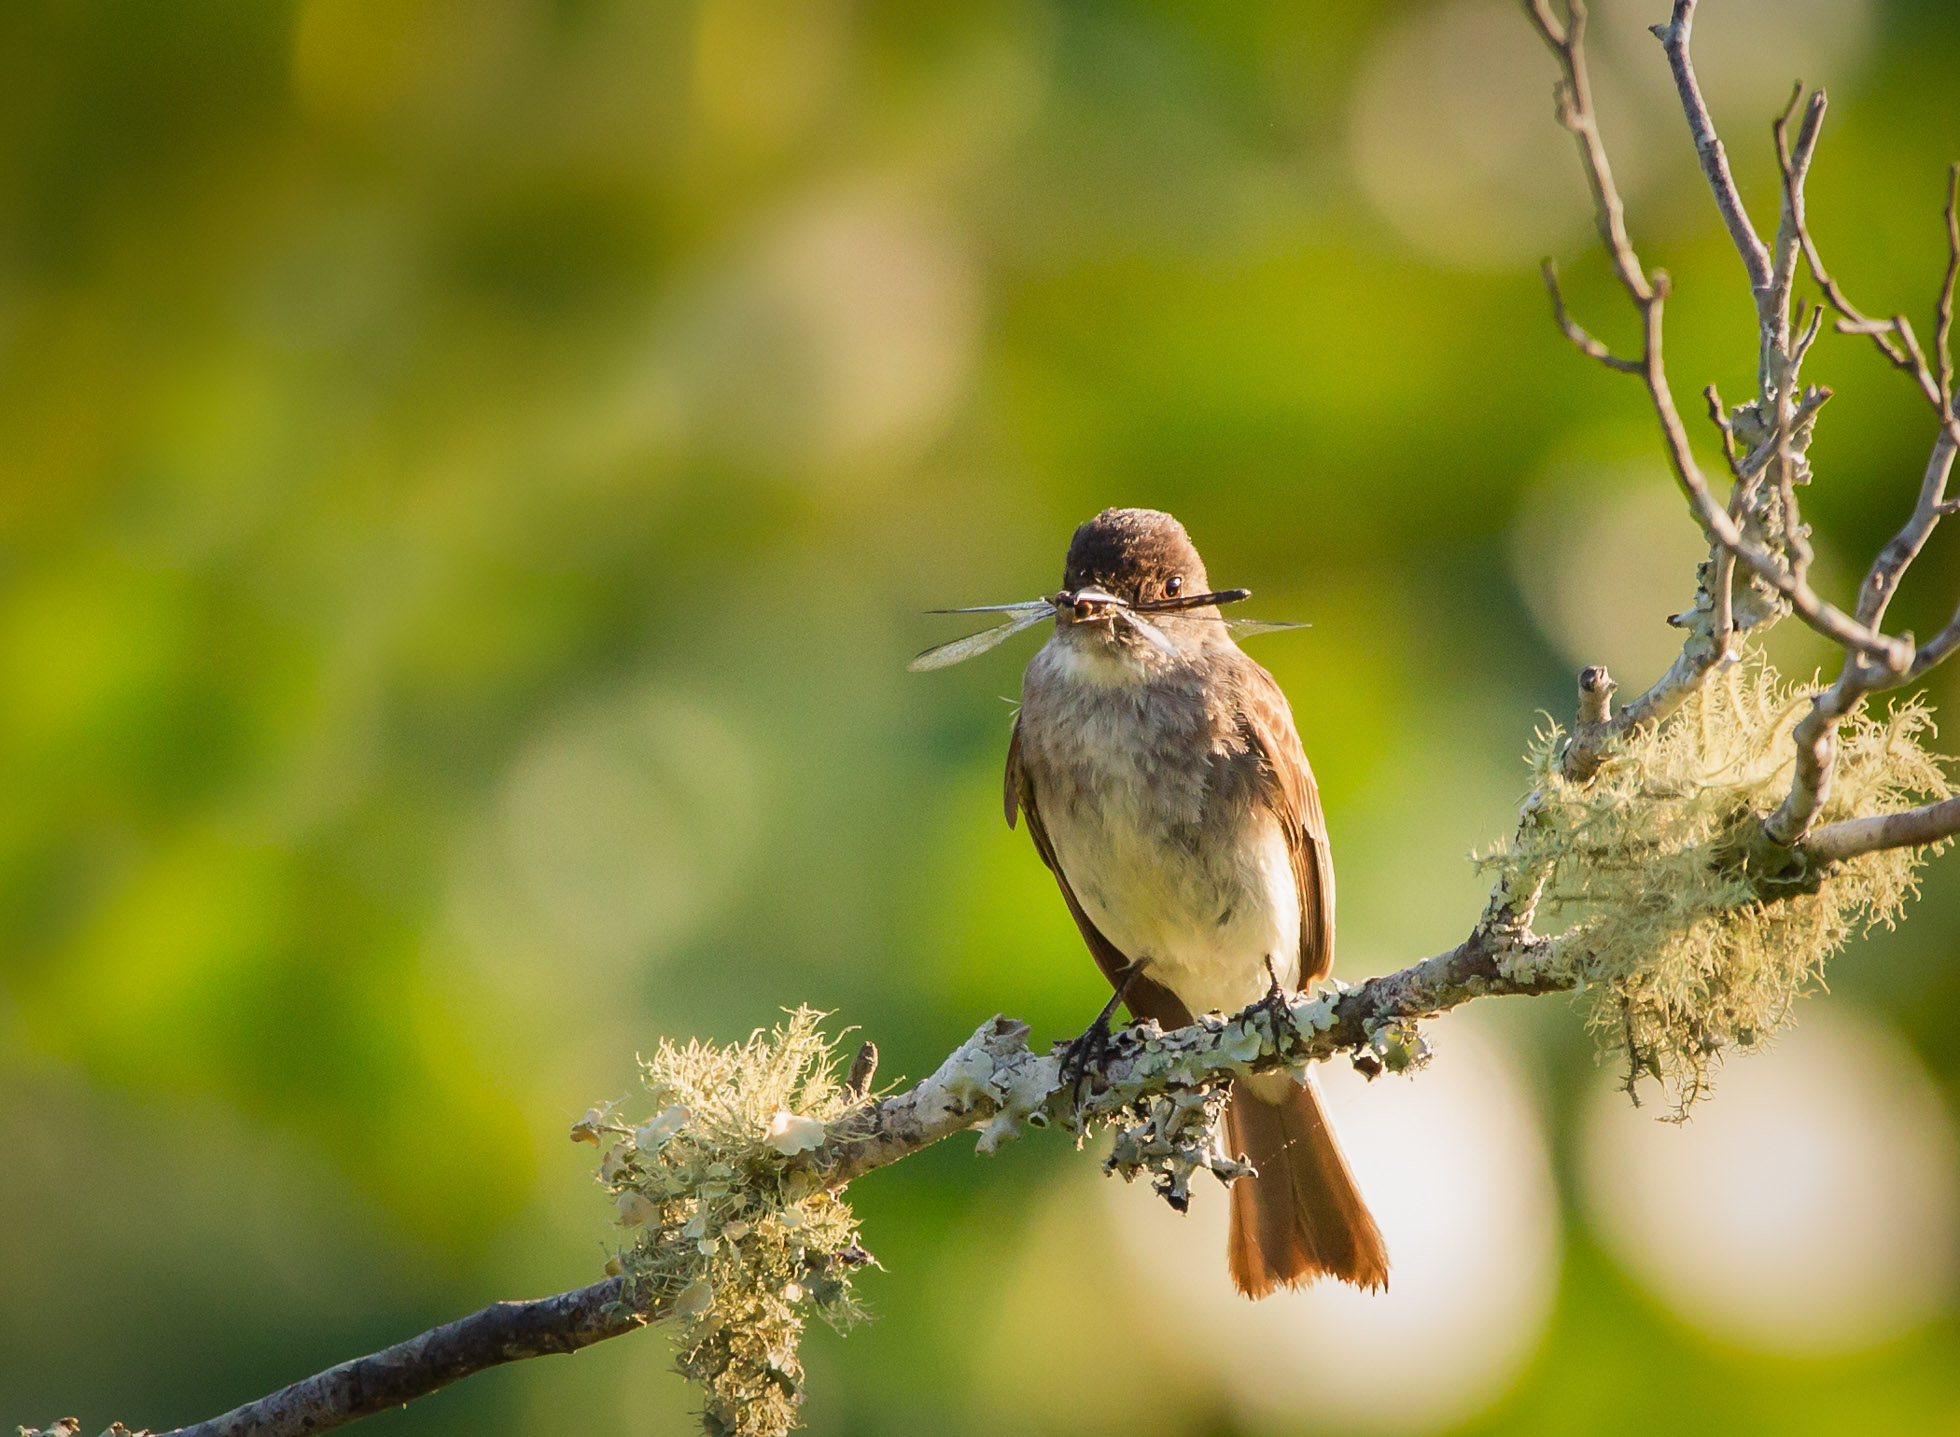 Flycatcher with Dragonfly